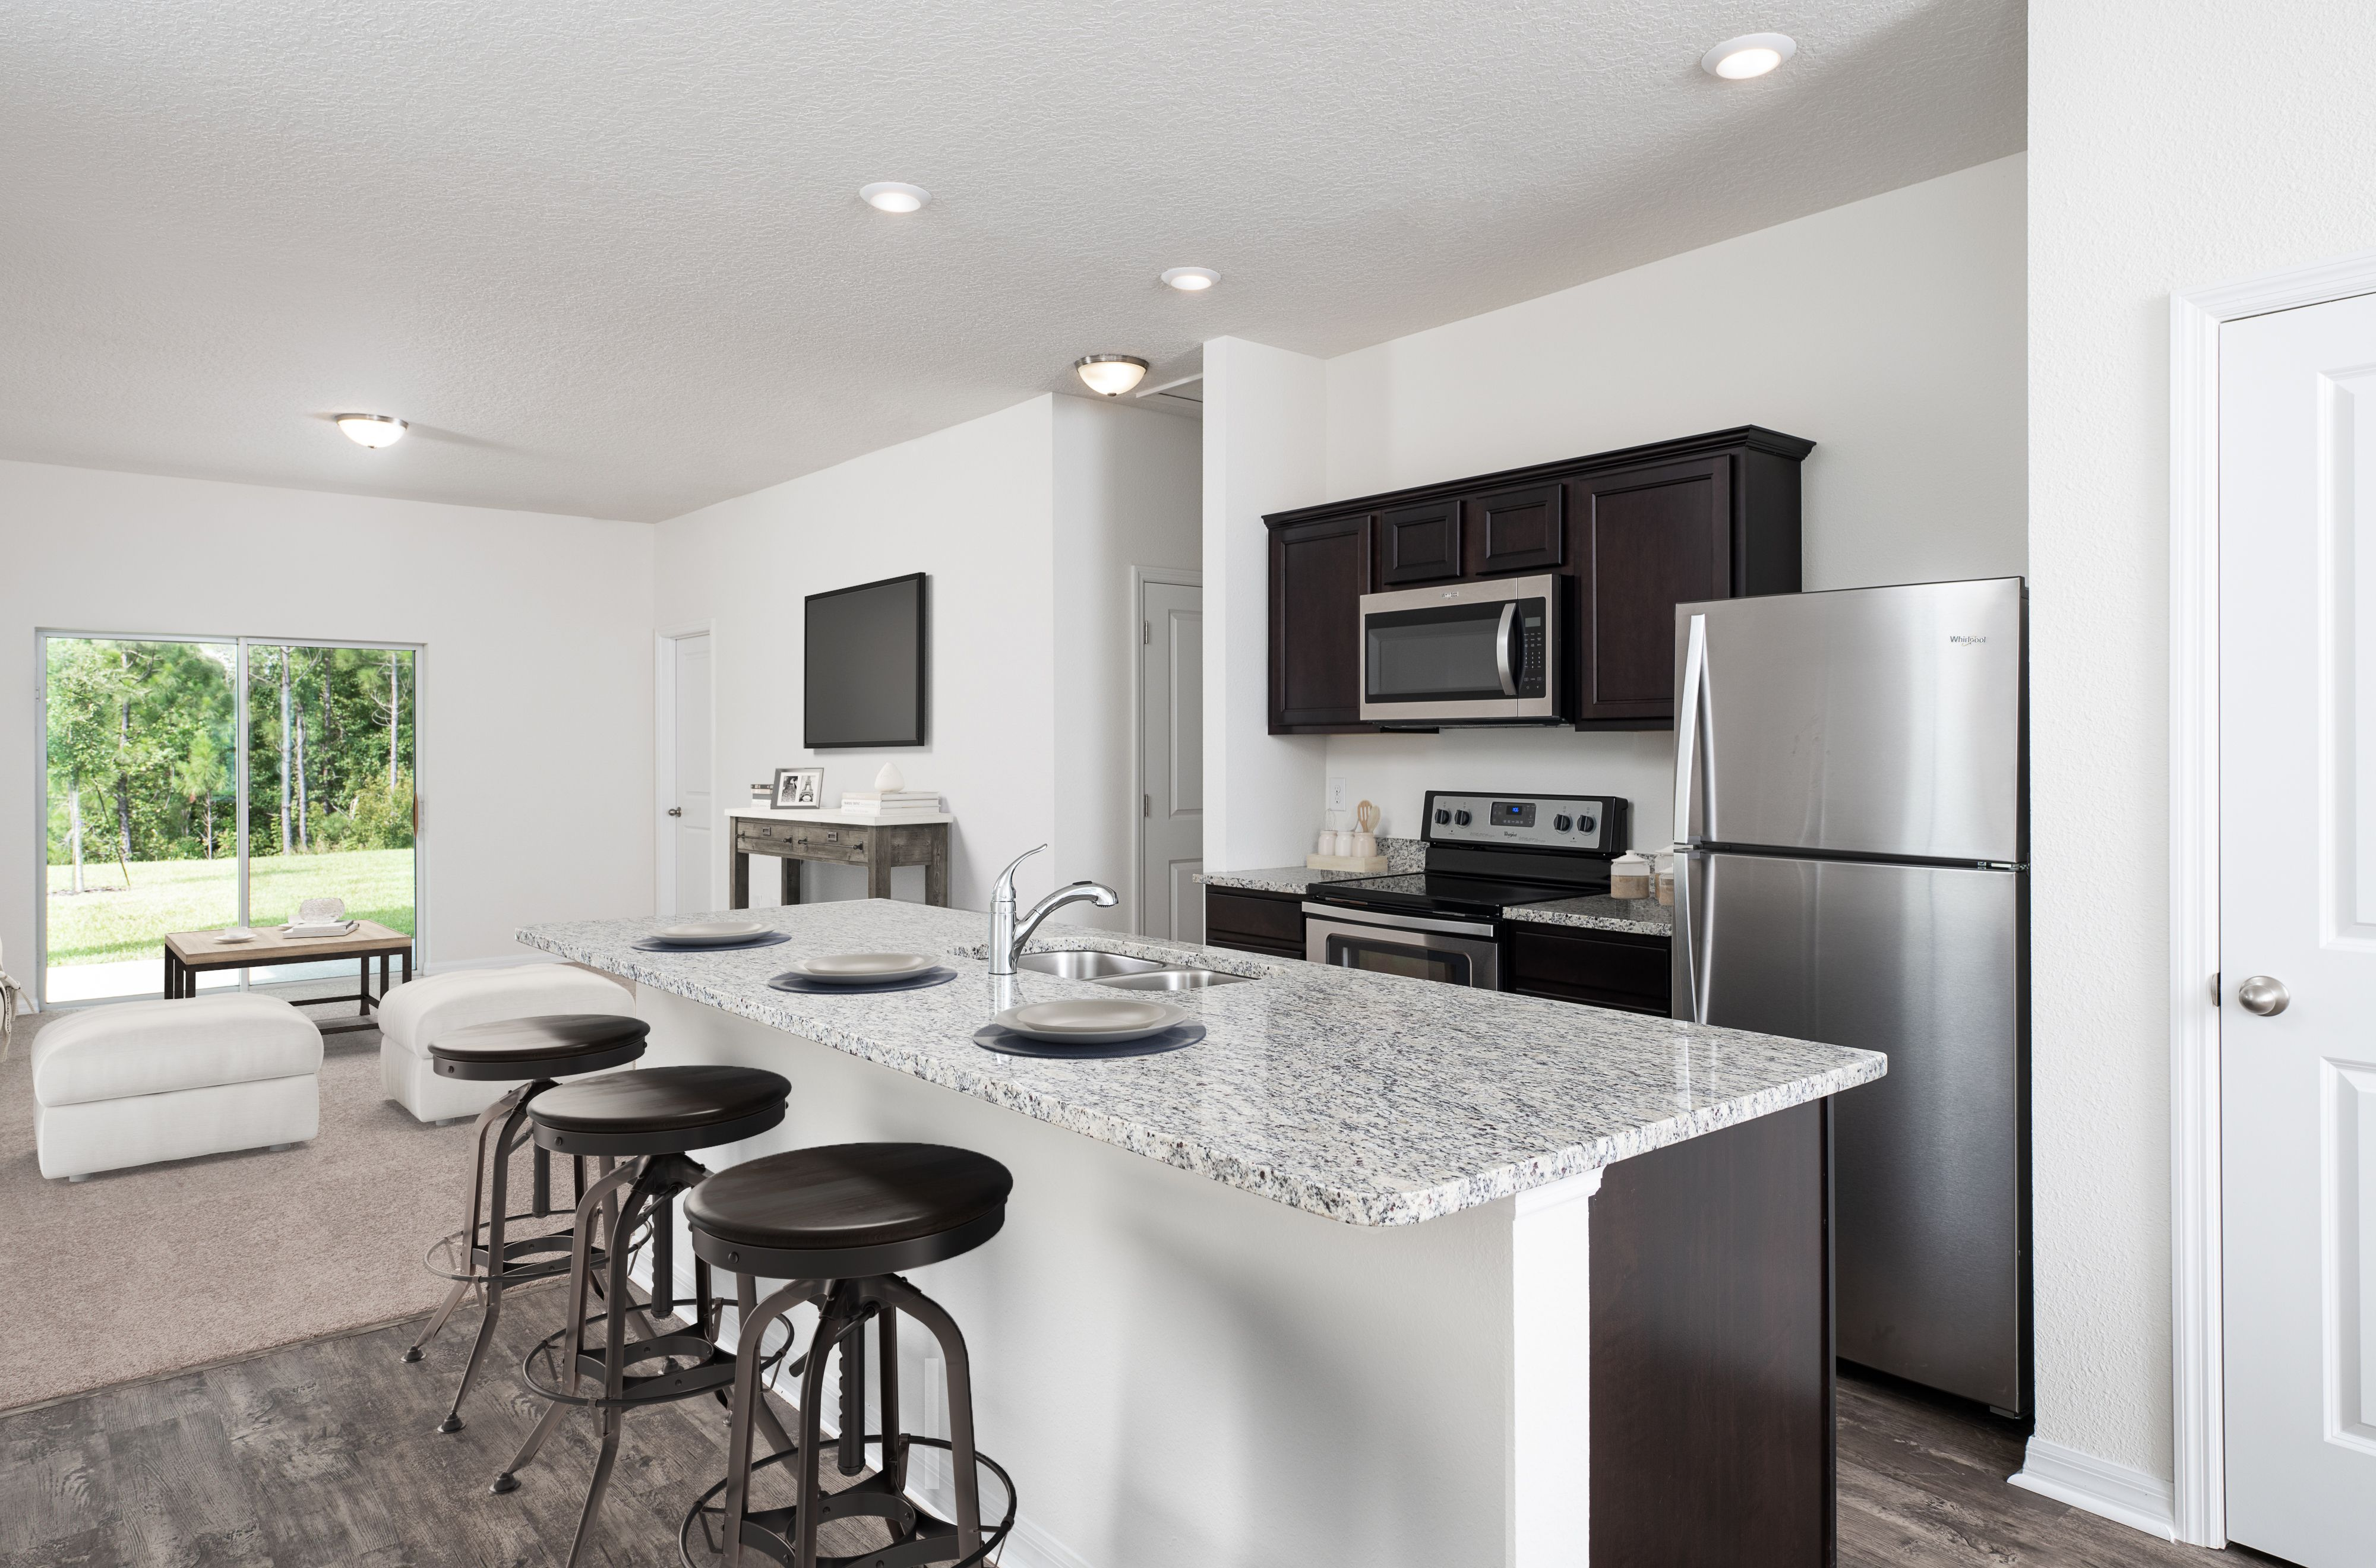 Kitchen featured in the Sterling By Starlight Homes in Daytona Beach, FL